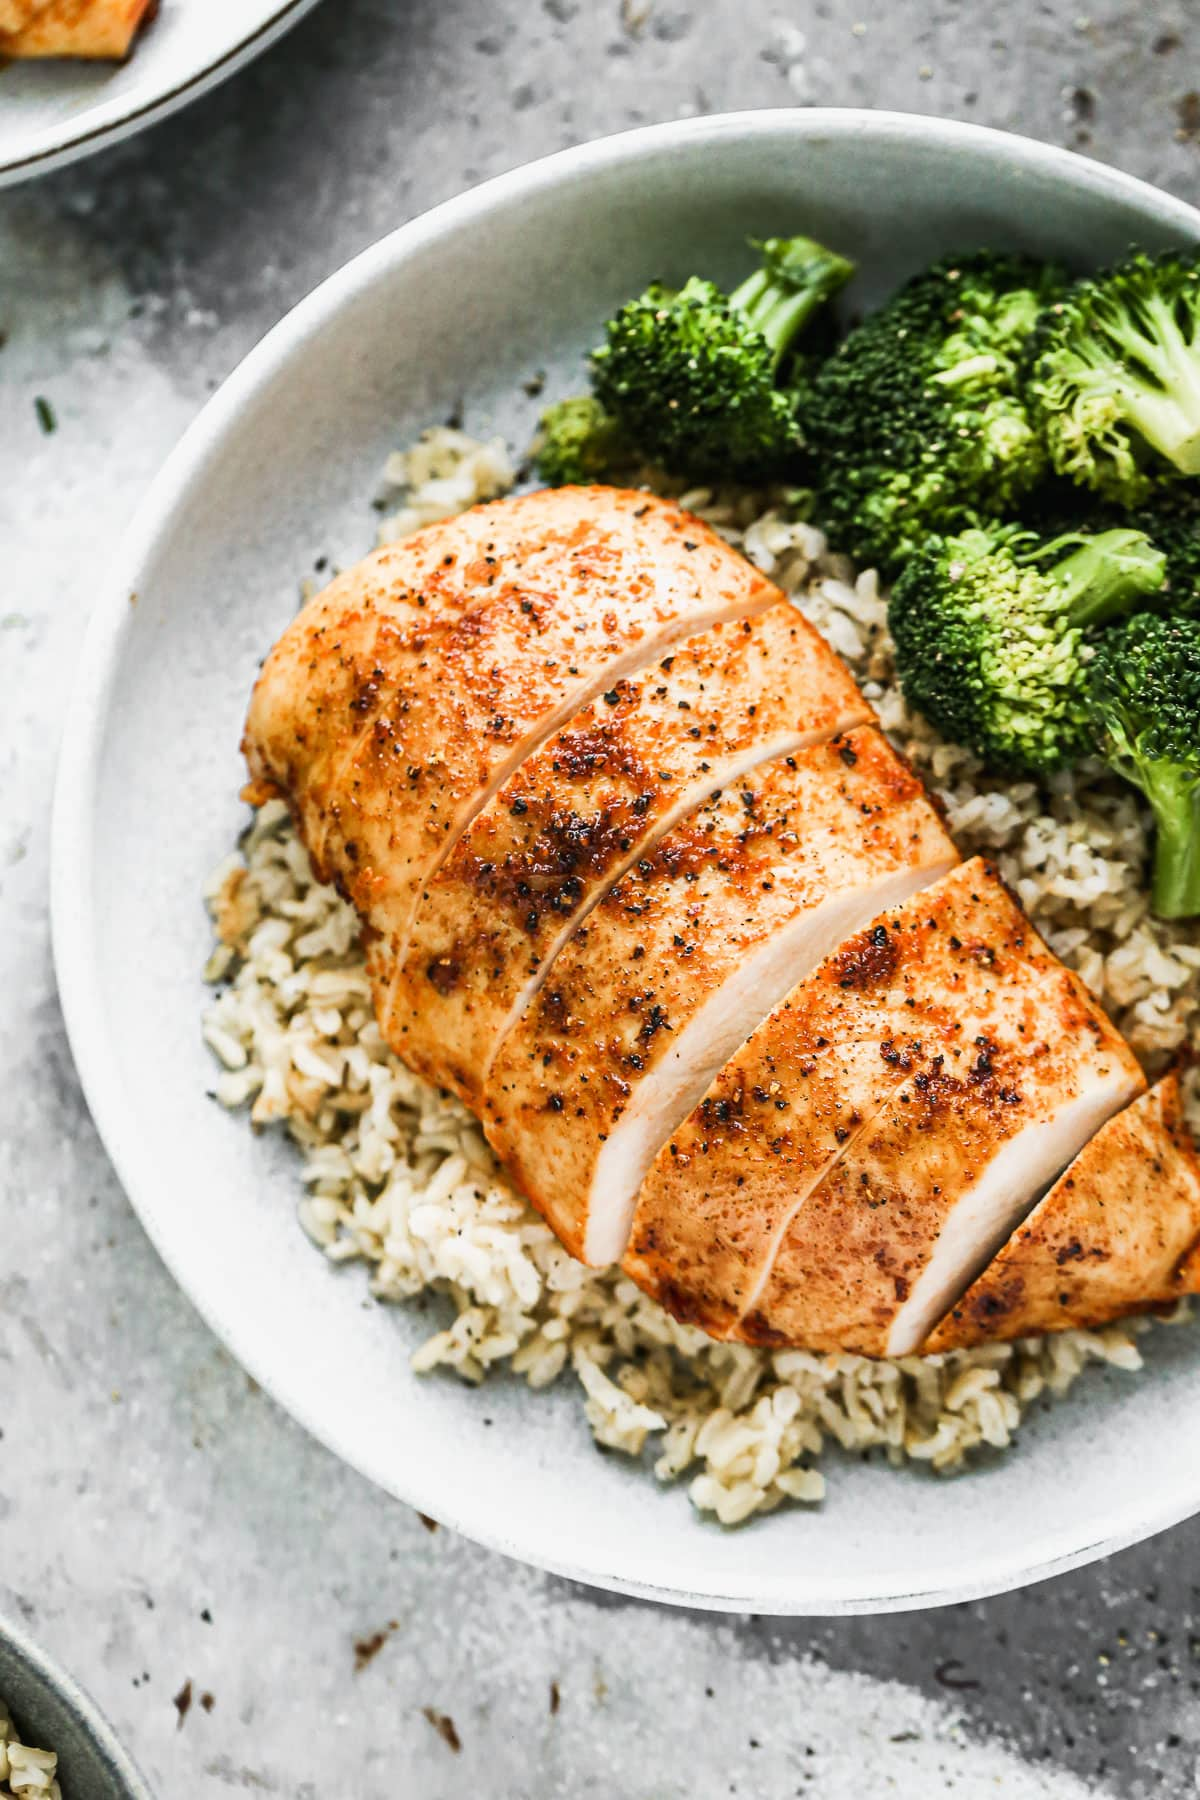 A chicken breast served on a bowl of rice and broccoli